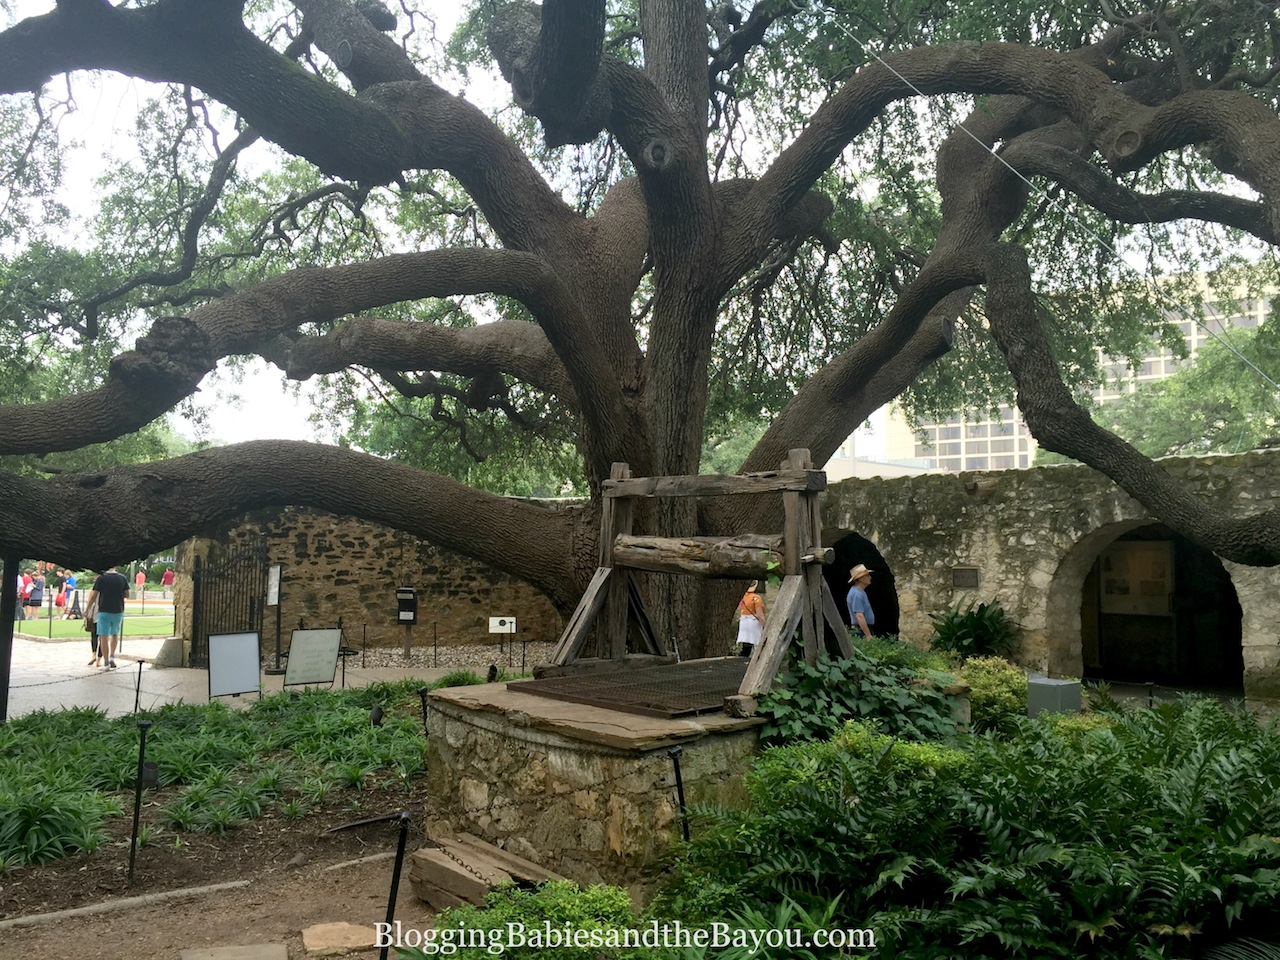 San Antonio Must See Educational Family Attractions - The Alamo #BayouTravel